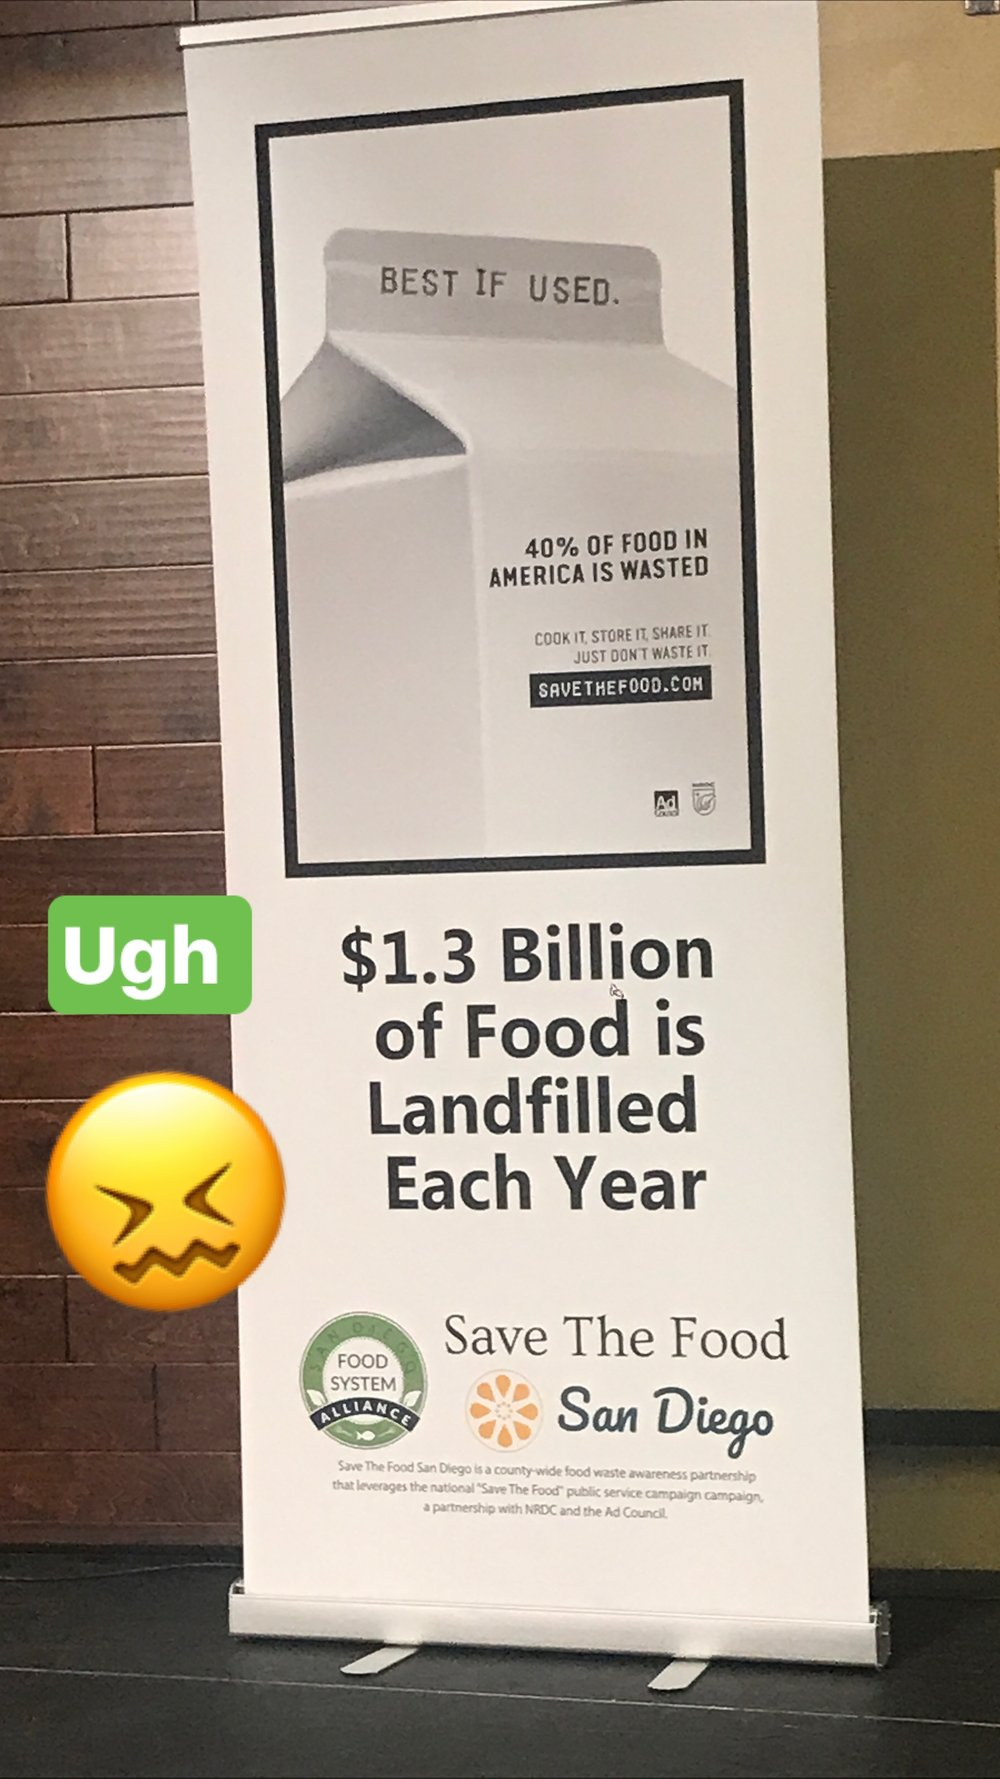 food waste in the landfill